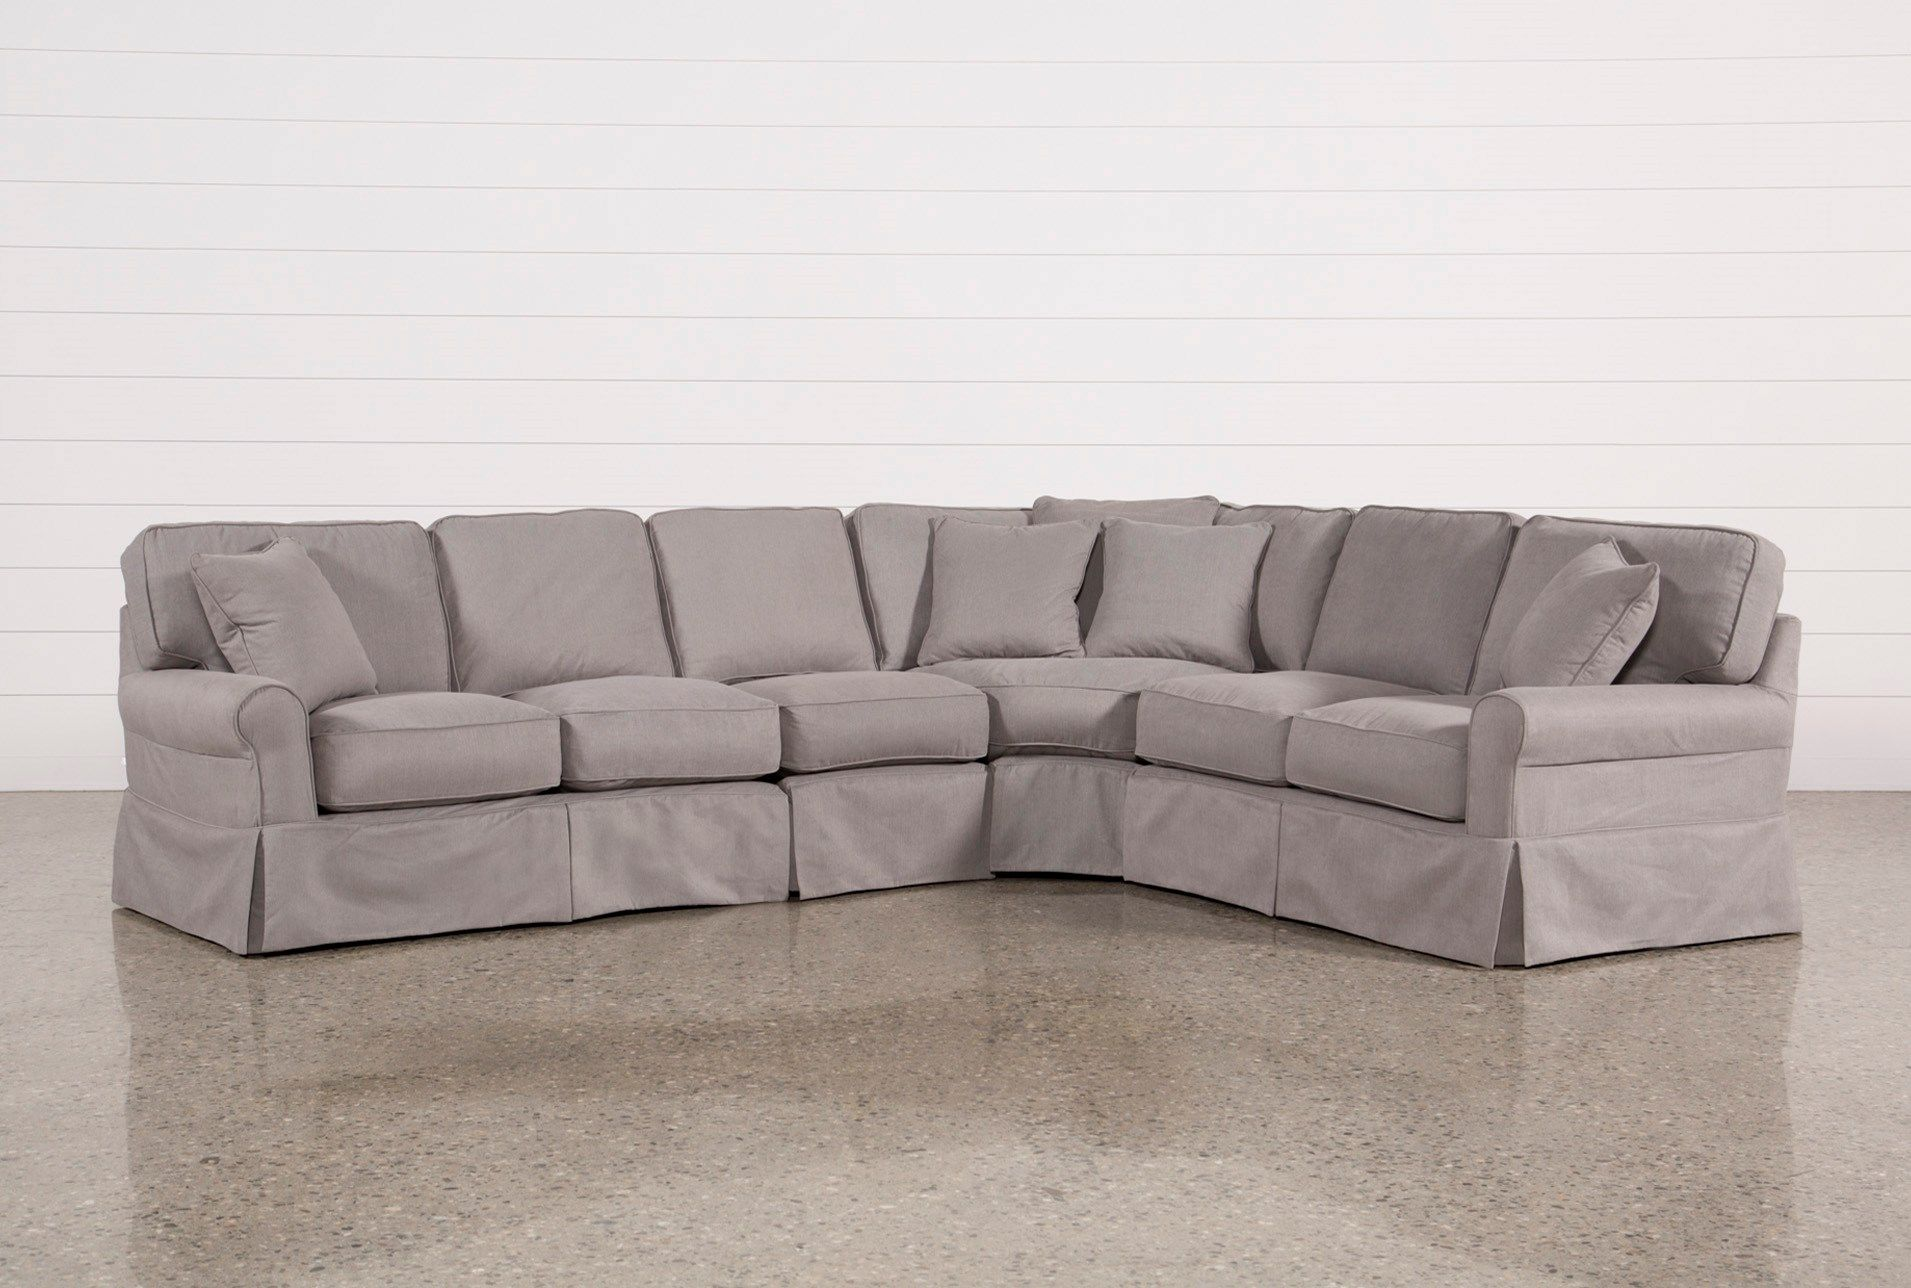 Carlyle Slipcovered 4 Piece Sectional Grey Sofas